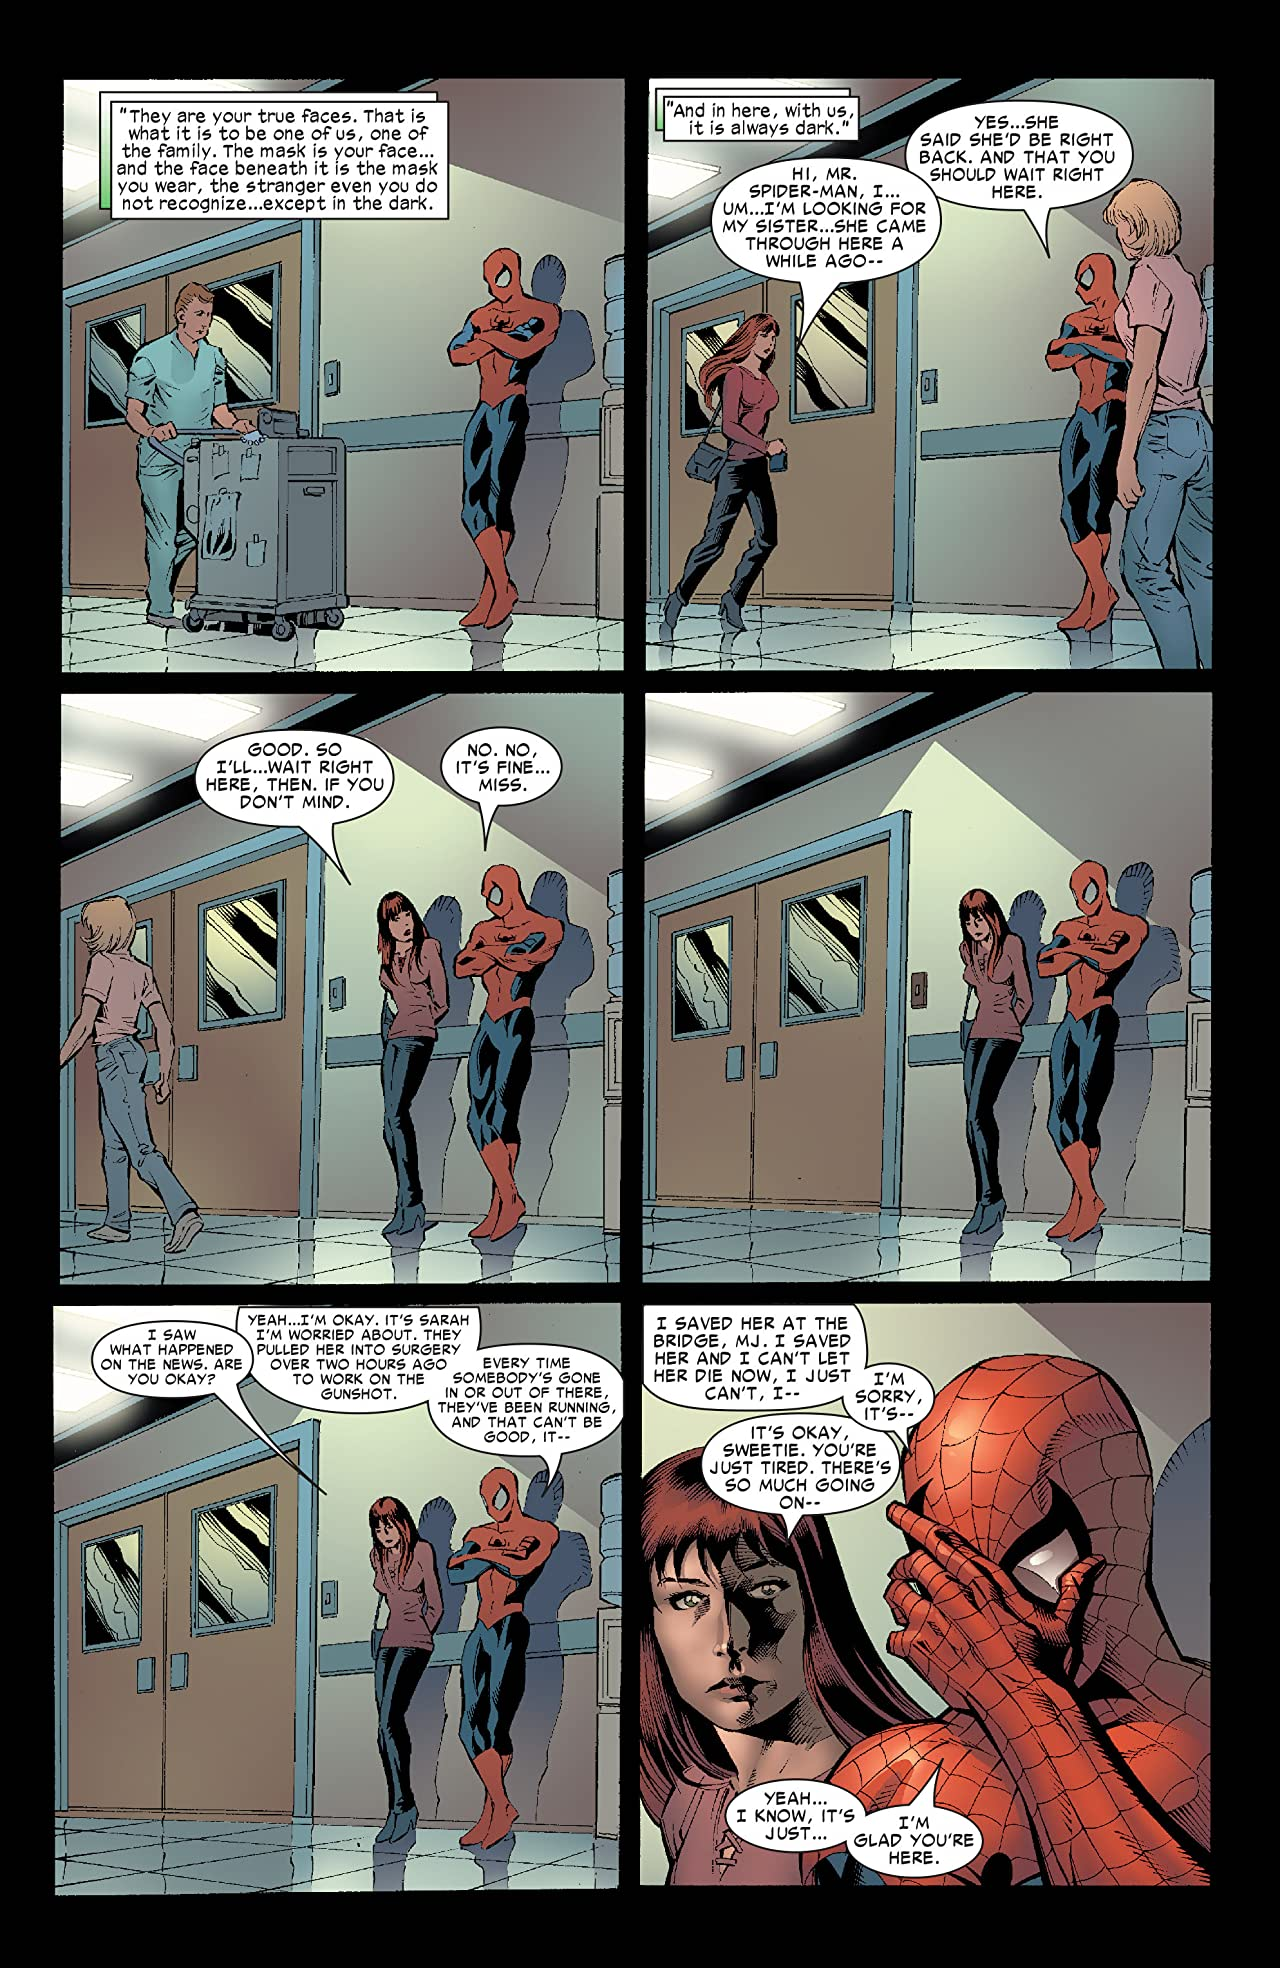 Amazing Spider-Man (1999-2013) #514